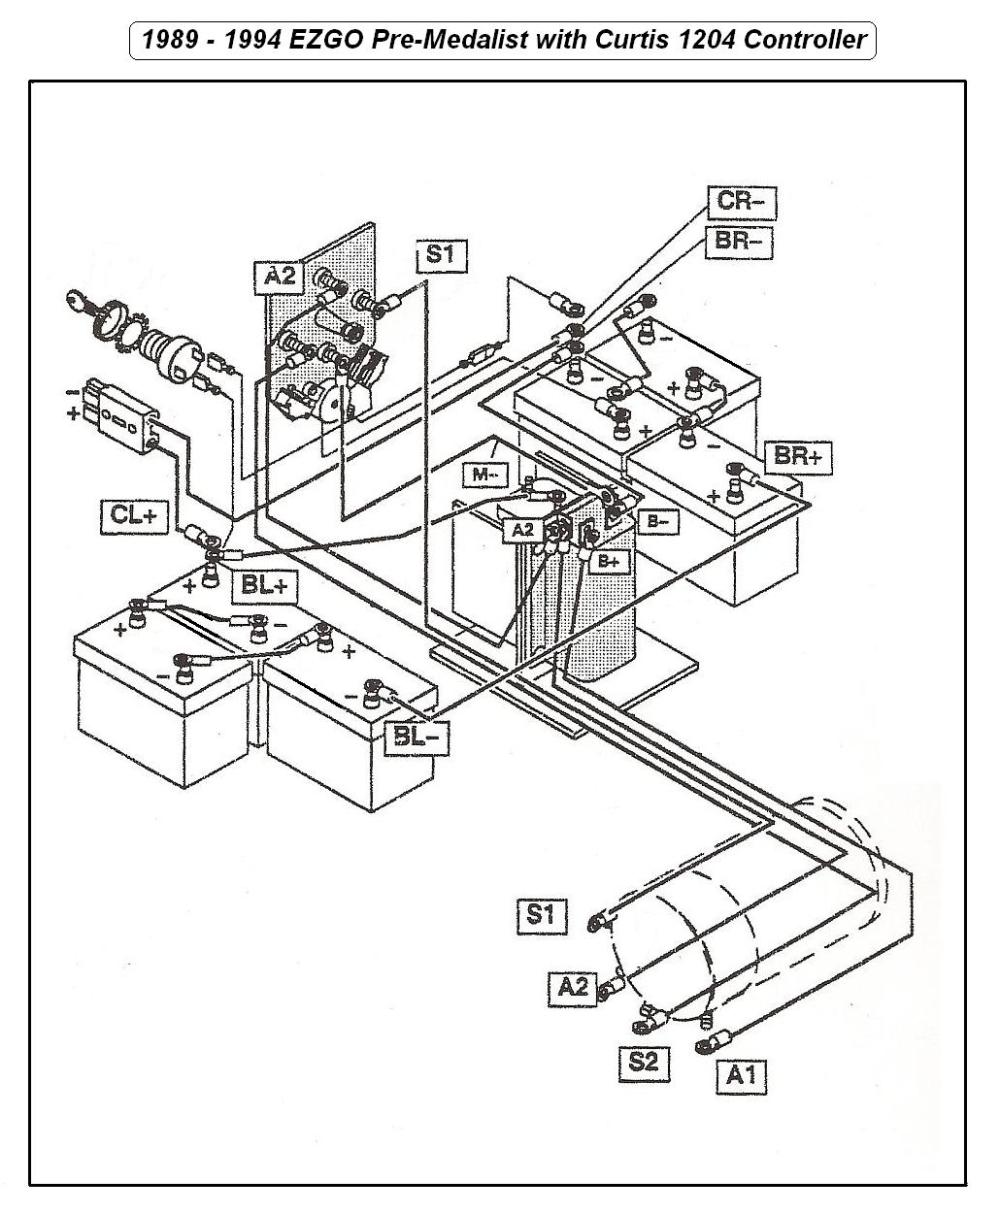 medium resolution of golf cart electrical diagram wiring diagram blogs power wheels electrical diagram 1987 48 volt ezgo solenoid